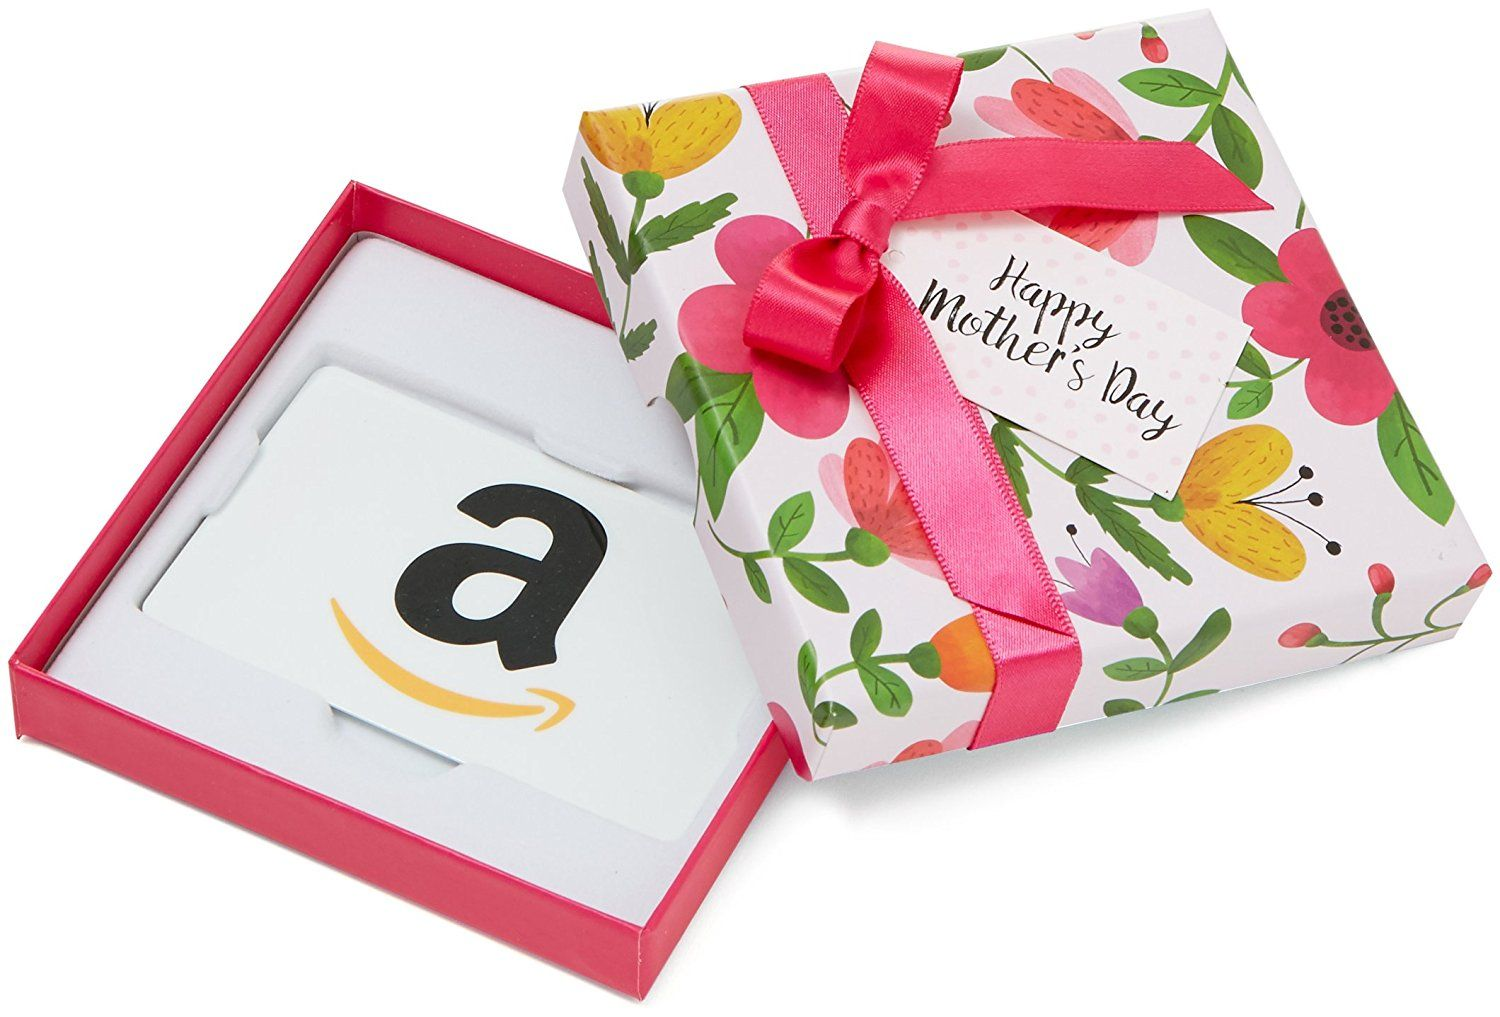 Gift card for any amount in a floral box for